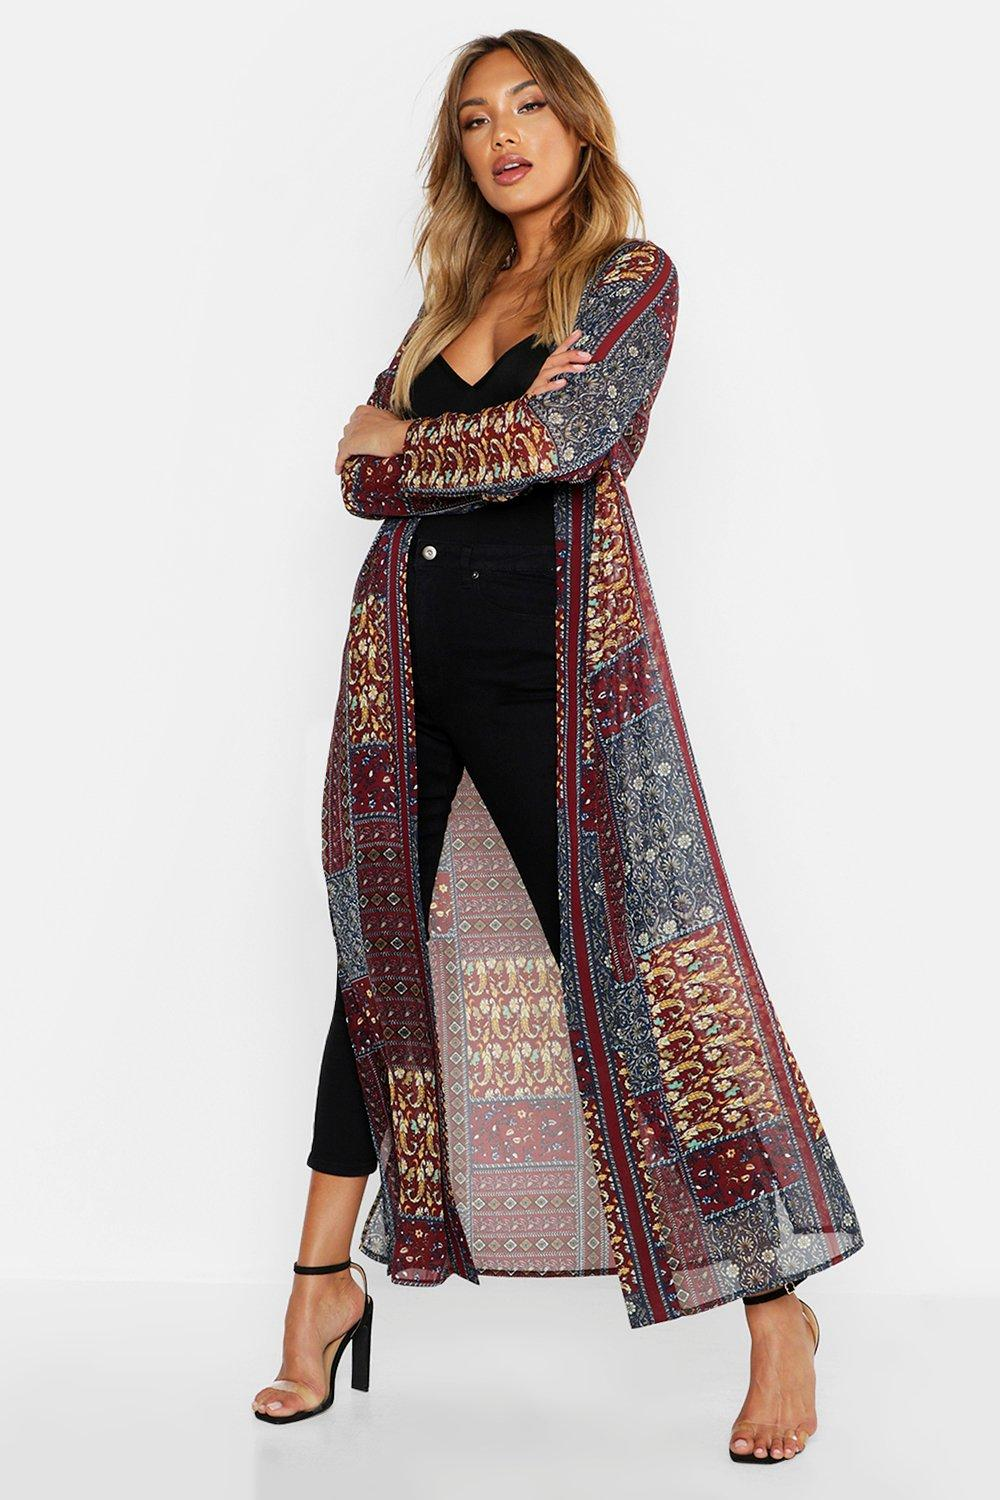 70s Outfits – 70s Style Ideas for Women Womens Woven Paisley Longline Kimono - Red - 12 $17.50 AT vintagedancer.com